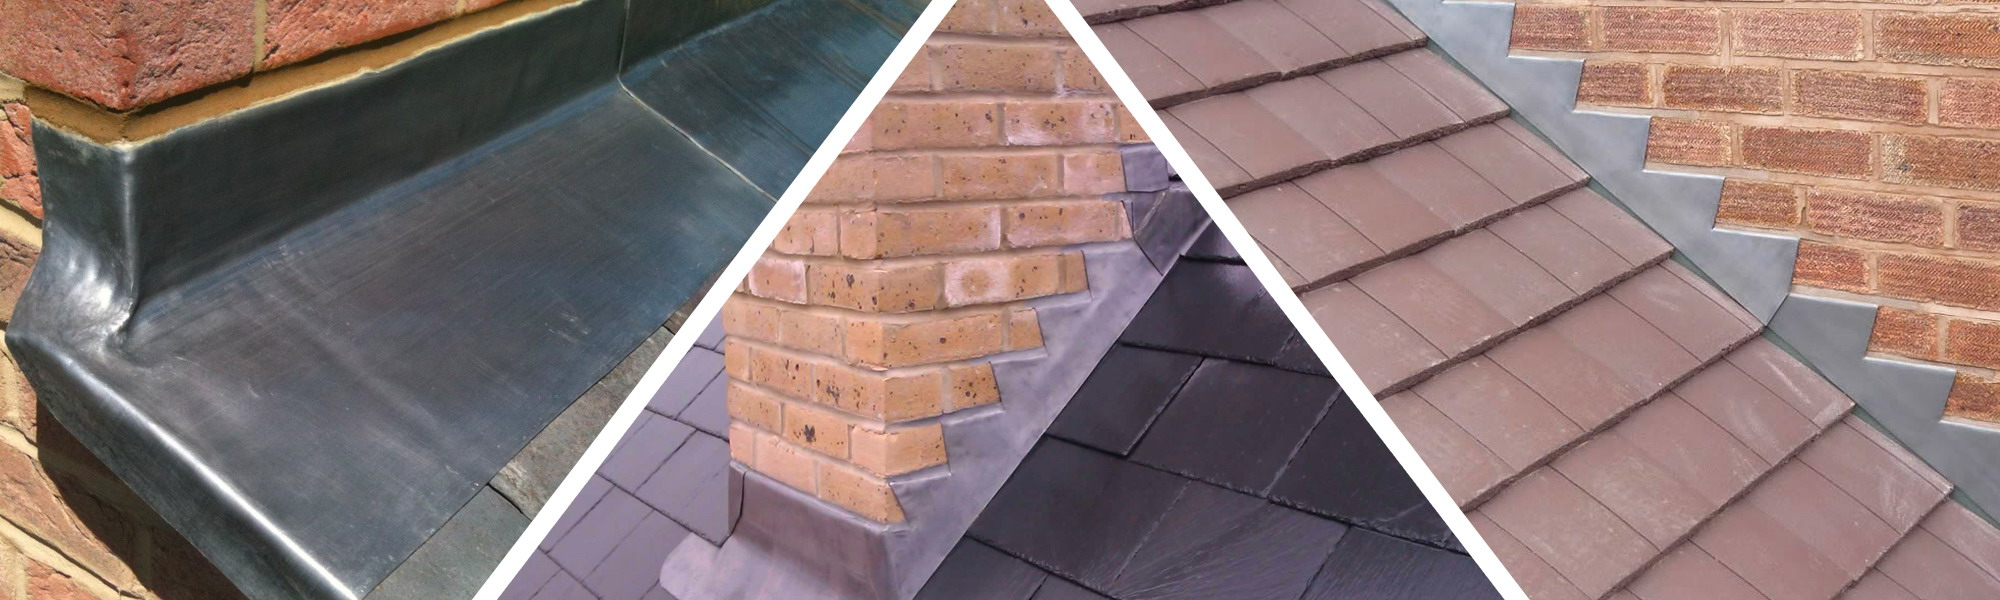 Commercial gutter cleaning in the South East 2